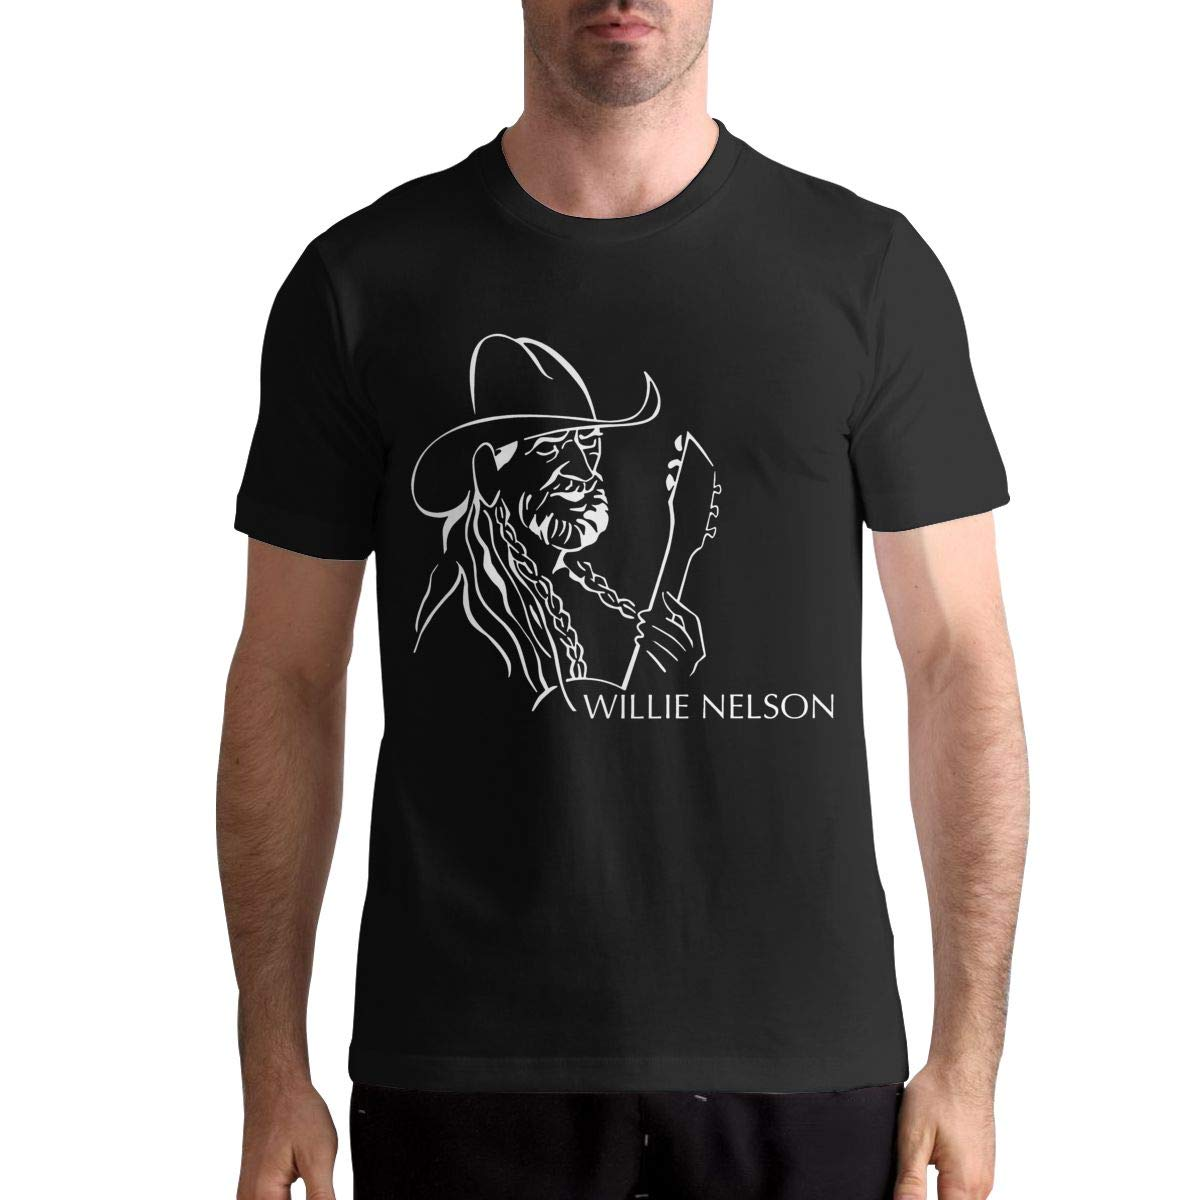 Willie Nelson T Shirt Mens Casual Personality Fashion Short Sleeved Shirt